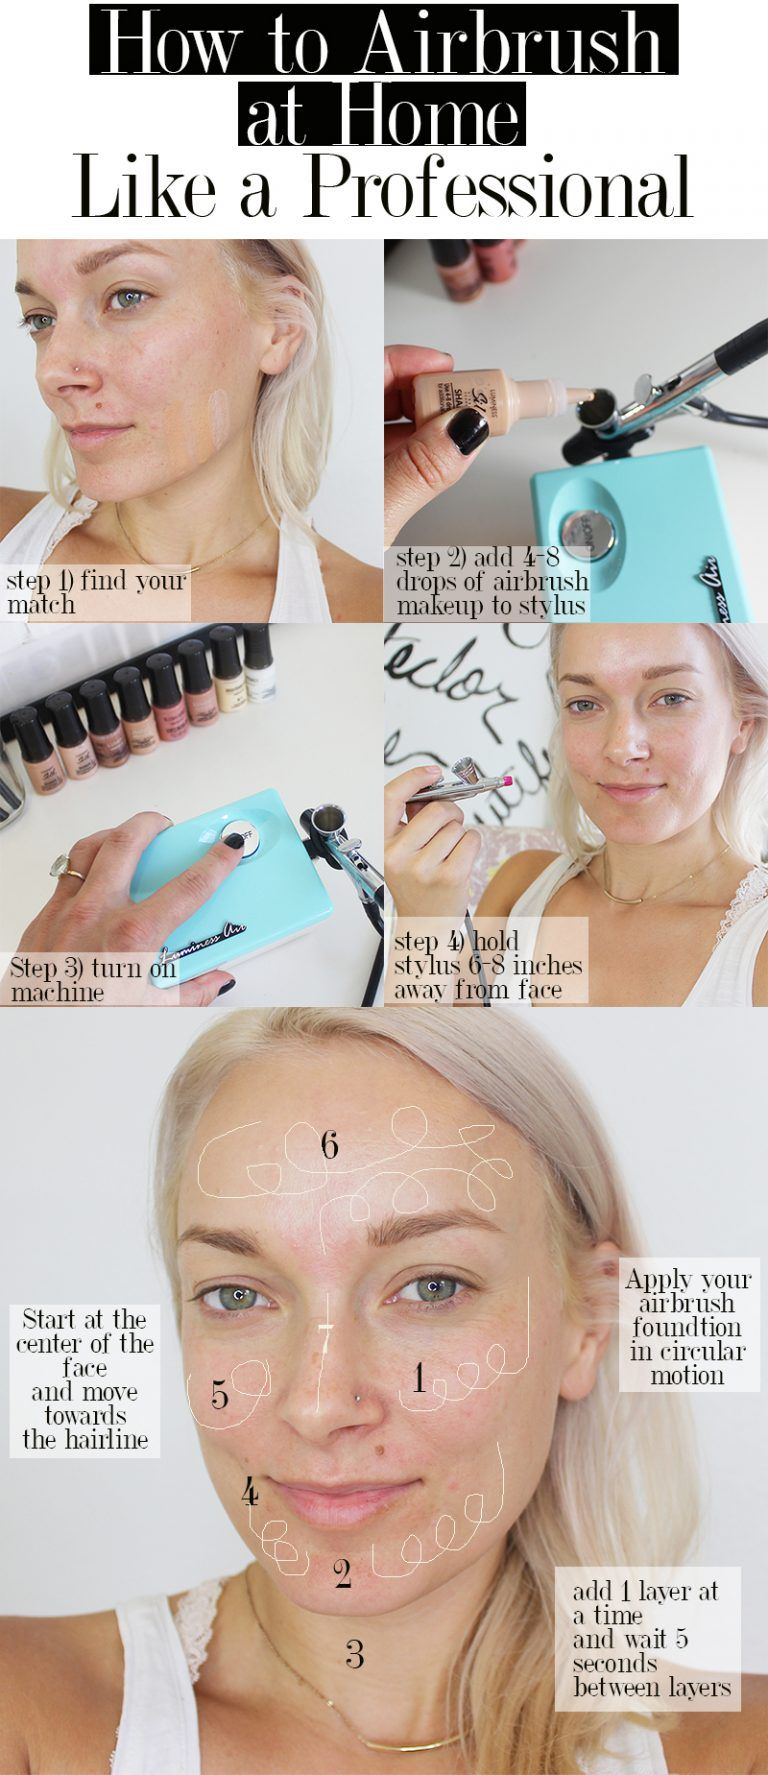 11 Personal Airbrush Makeup Tips With Luminess Air - Citizens of